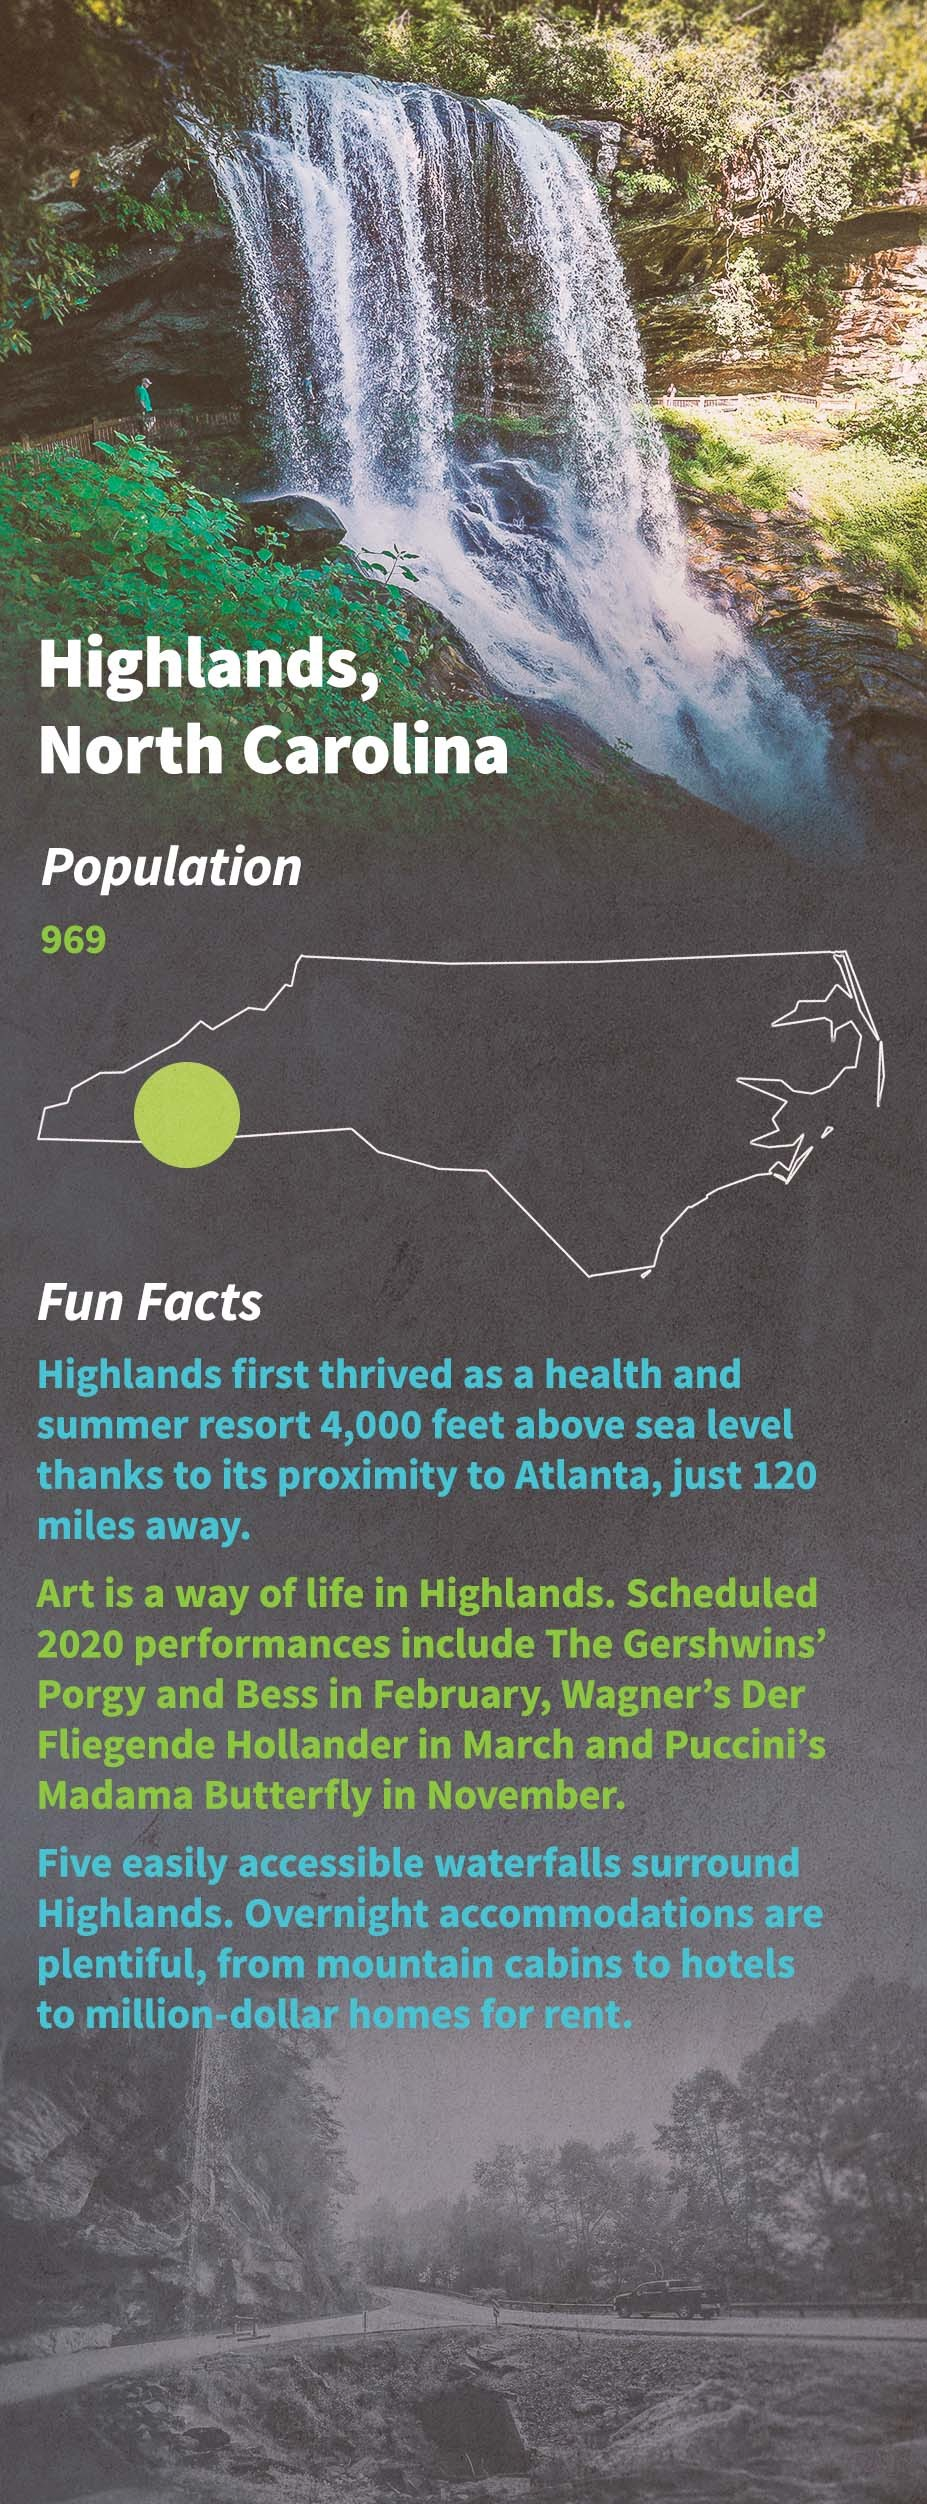 Highlands Fun Facts